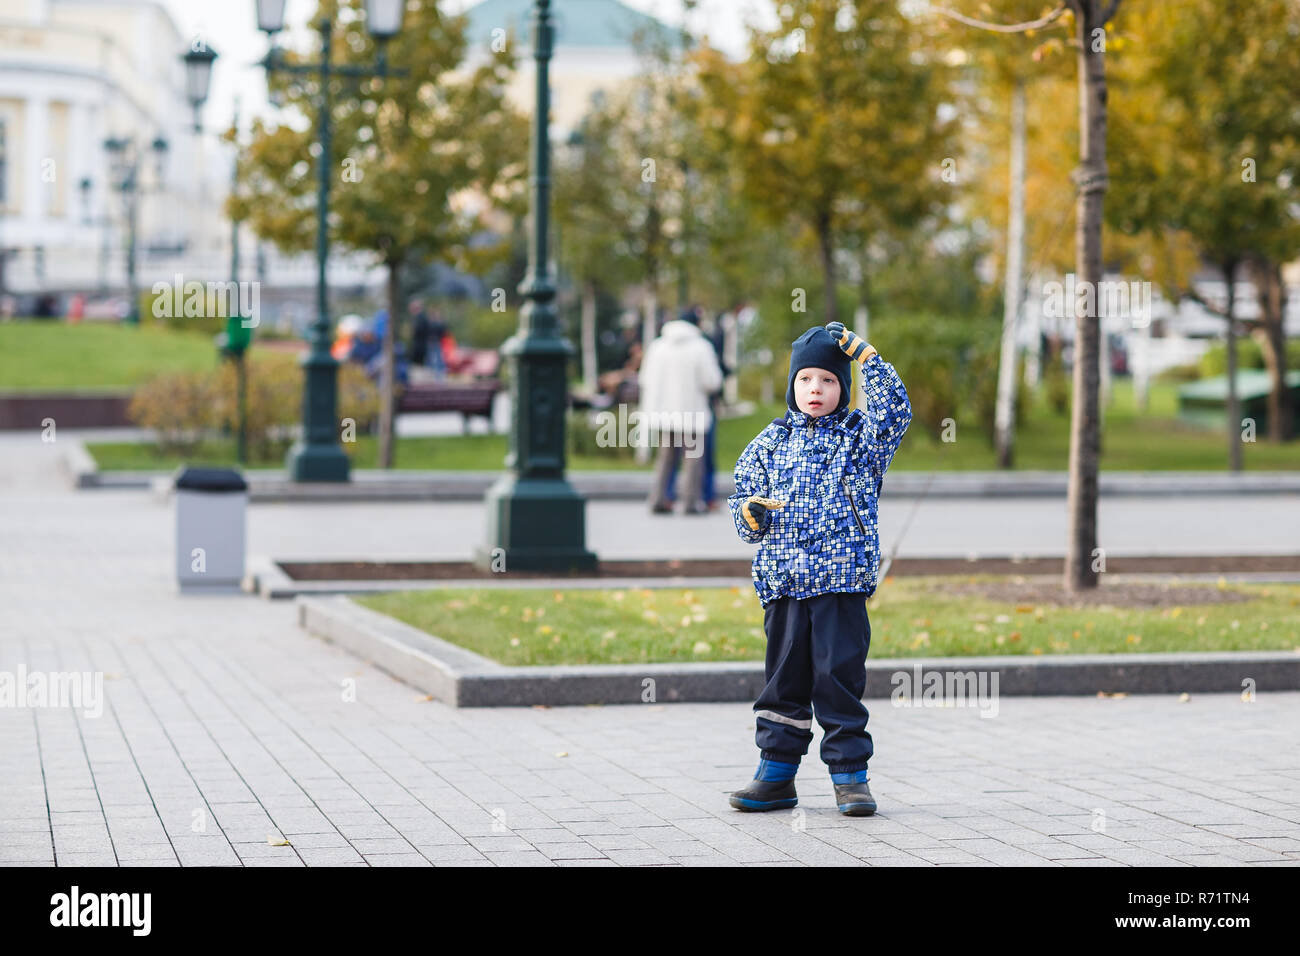 Handsome young boy walks in the area. Toddler thought. The child scratches his head and thinks. Children dream. - Stock Image